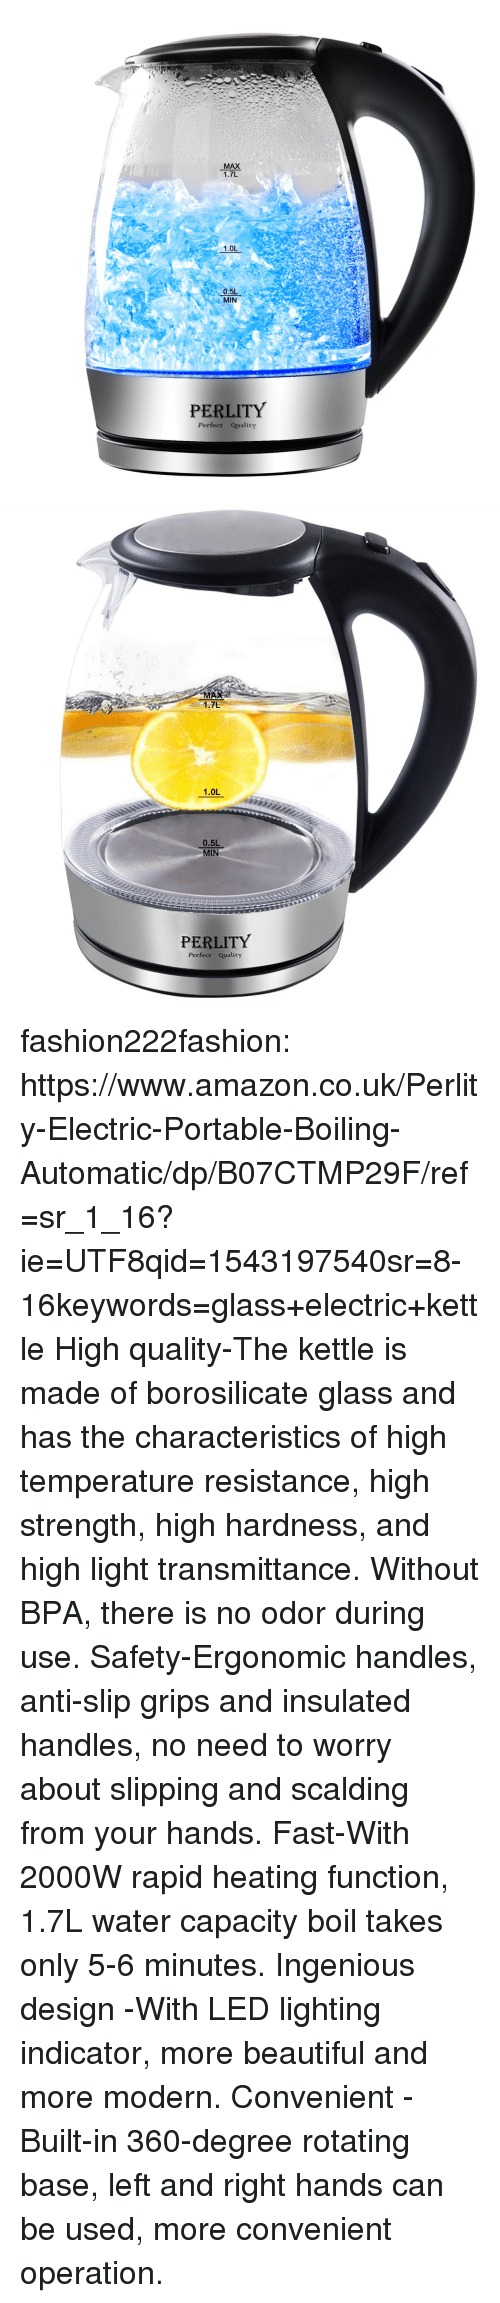 ingenious: MAX  1.7L  1.0L  0.5L  MIN  PERLITY  Perfect Quality   MA  1.7L  1.0L  0.5L  MIN  PERLITY  Perfect Qualicy fashion222fashion: https://www.amazon.co.uk/Perlity-Electric-Portable-Boiling-Automatic/dp/B07CTMP29F/ref=sr_1_16?ie=UTF8qid=1543197540sr=8-16keywords=glass+electric+kettle   High quality-The kettle is made of borosilicate glass and has the characteristics of high temperature resistance, high strength, high hardness, and high light transmittance. Without BPA, there is no odor during use. Safety-Ergonomic handles, anti-slip grips and insulated handles, no need to worry about slipping and scalding from your hands. Fast-With 2000W rapid heating function, 1.7L water capacity boil takes only 5-6 minutes. Ingenious design -With LED lighting indicator, more beautiful and more modern. Convenient -Built-in 360-degree rotating base, left and right hands can be used, more convenient operation.